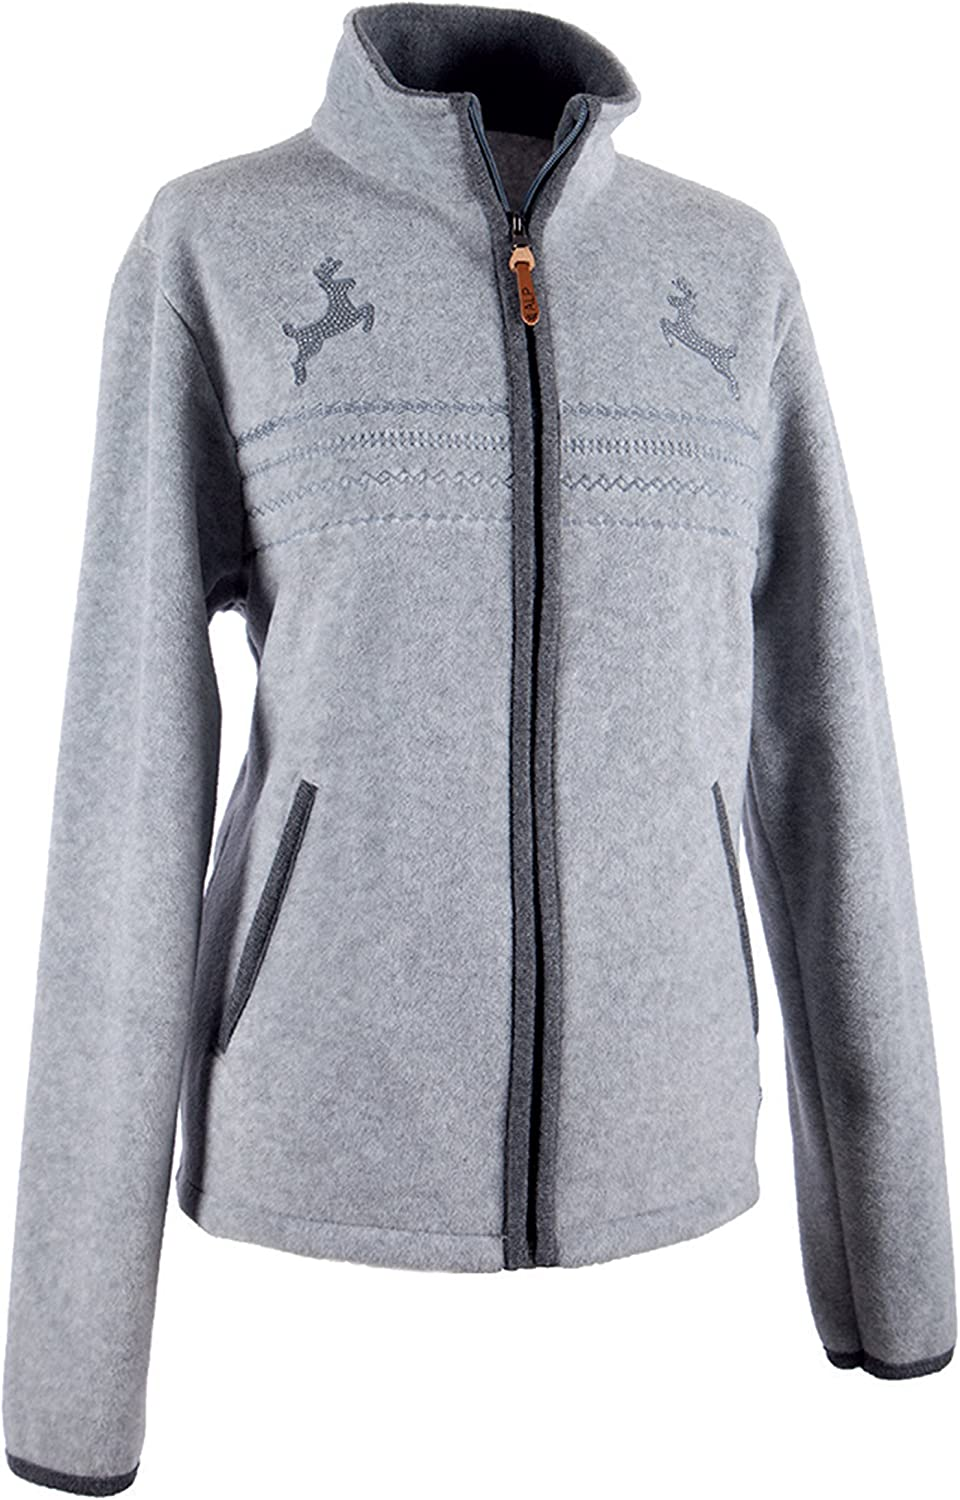 Alp by Brush Ladies Fleece Jacket with Embroidery and Strass